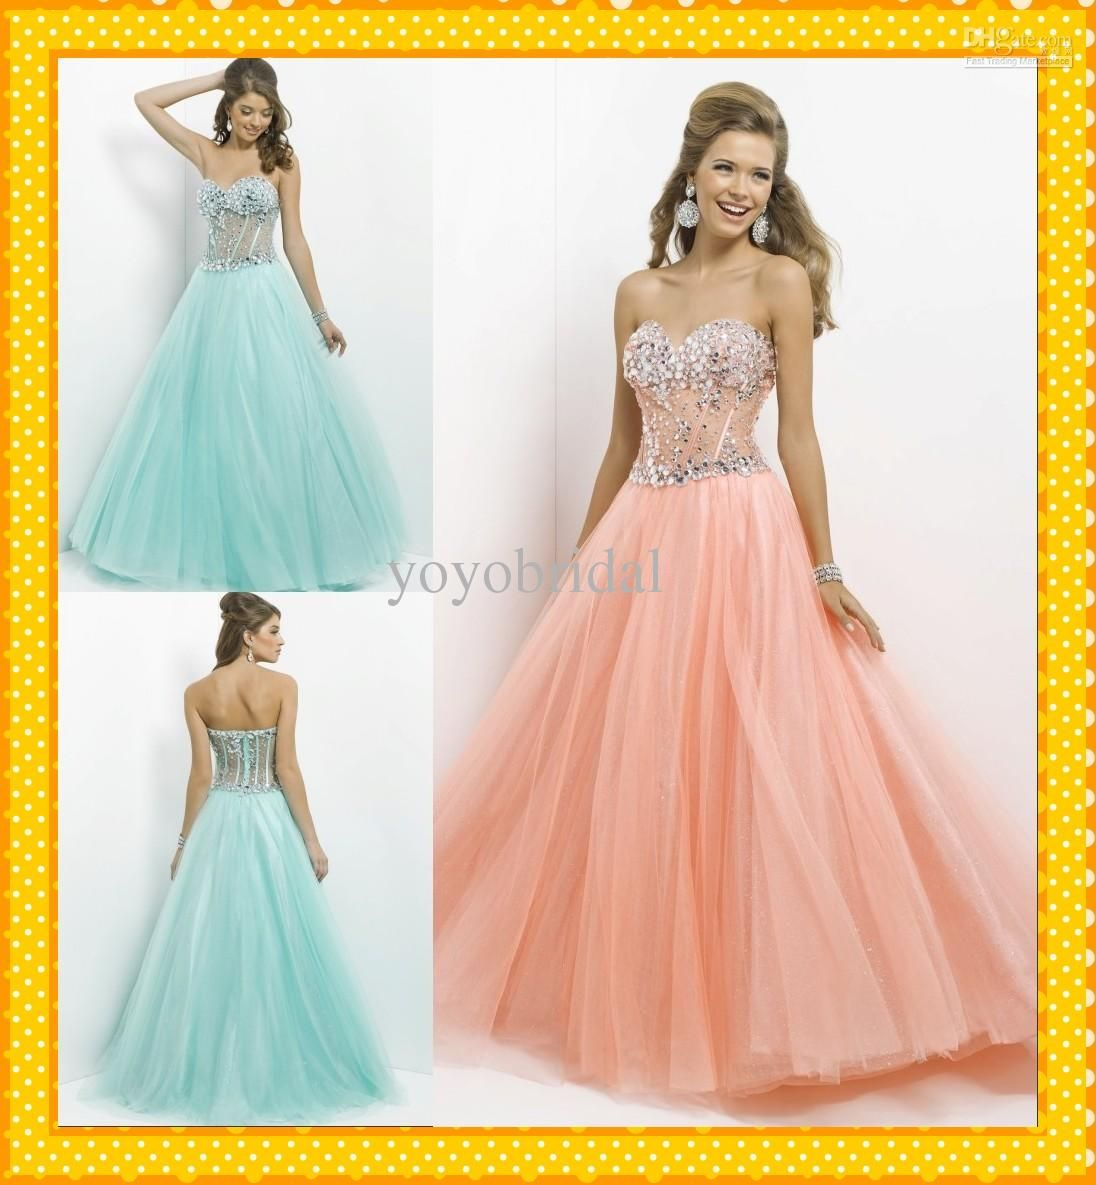 Wholesale prom dresses buy fancy peach coral mint sweetheart see